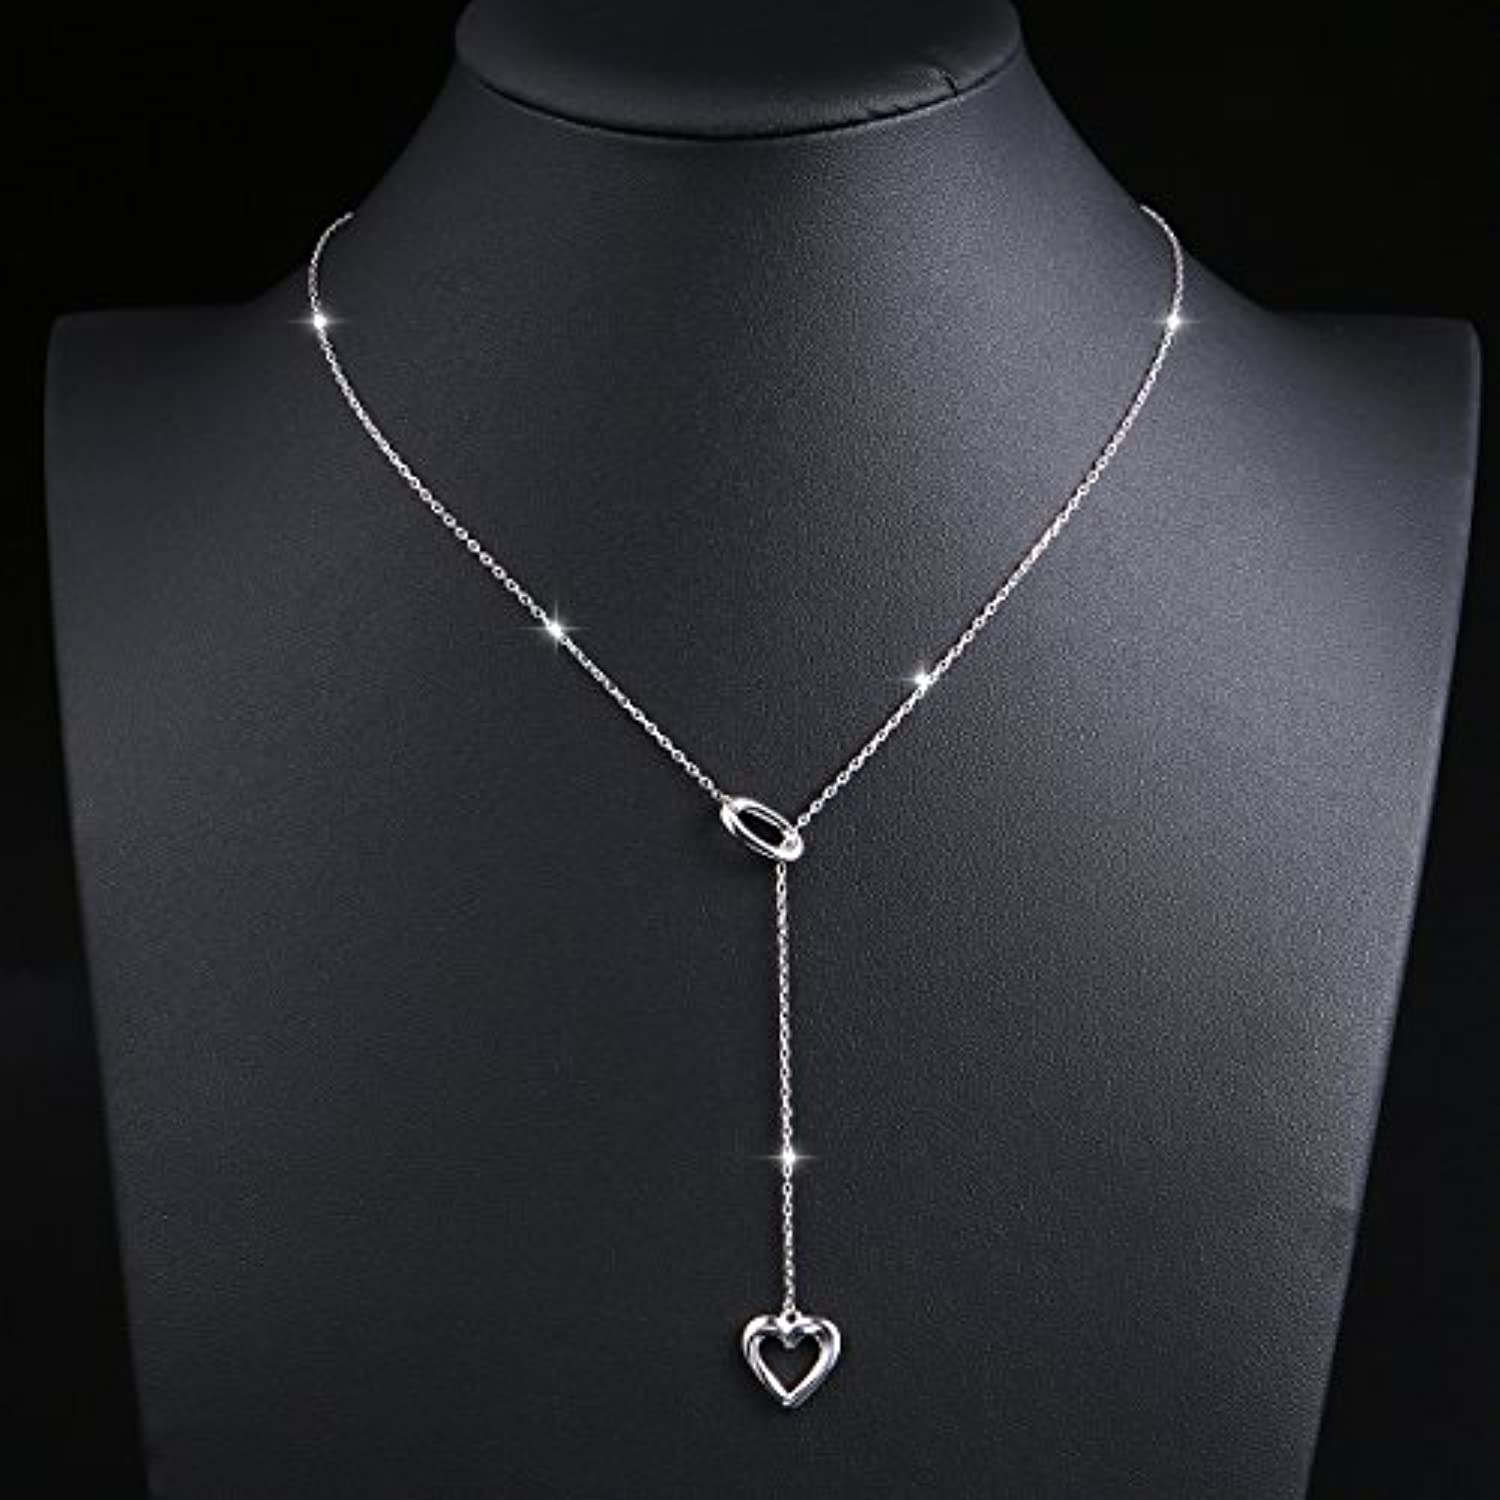 Long Necklace 925 Sterling Silver Adjustable Y Shaped Lariat Chain Necklace for Women